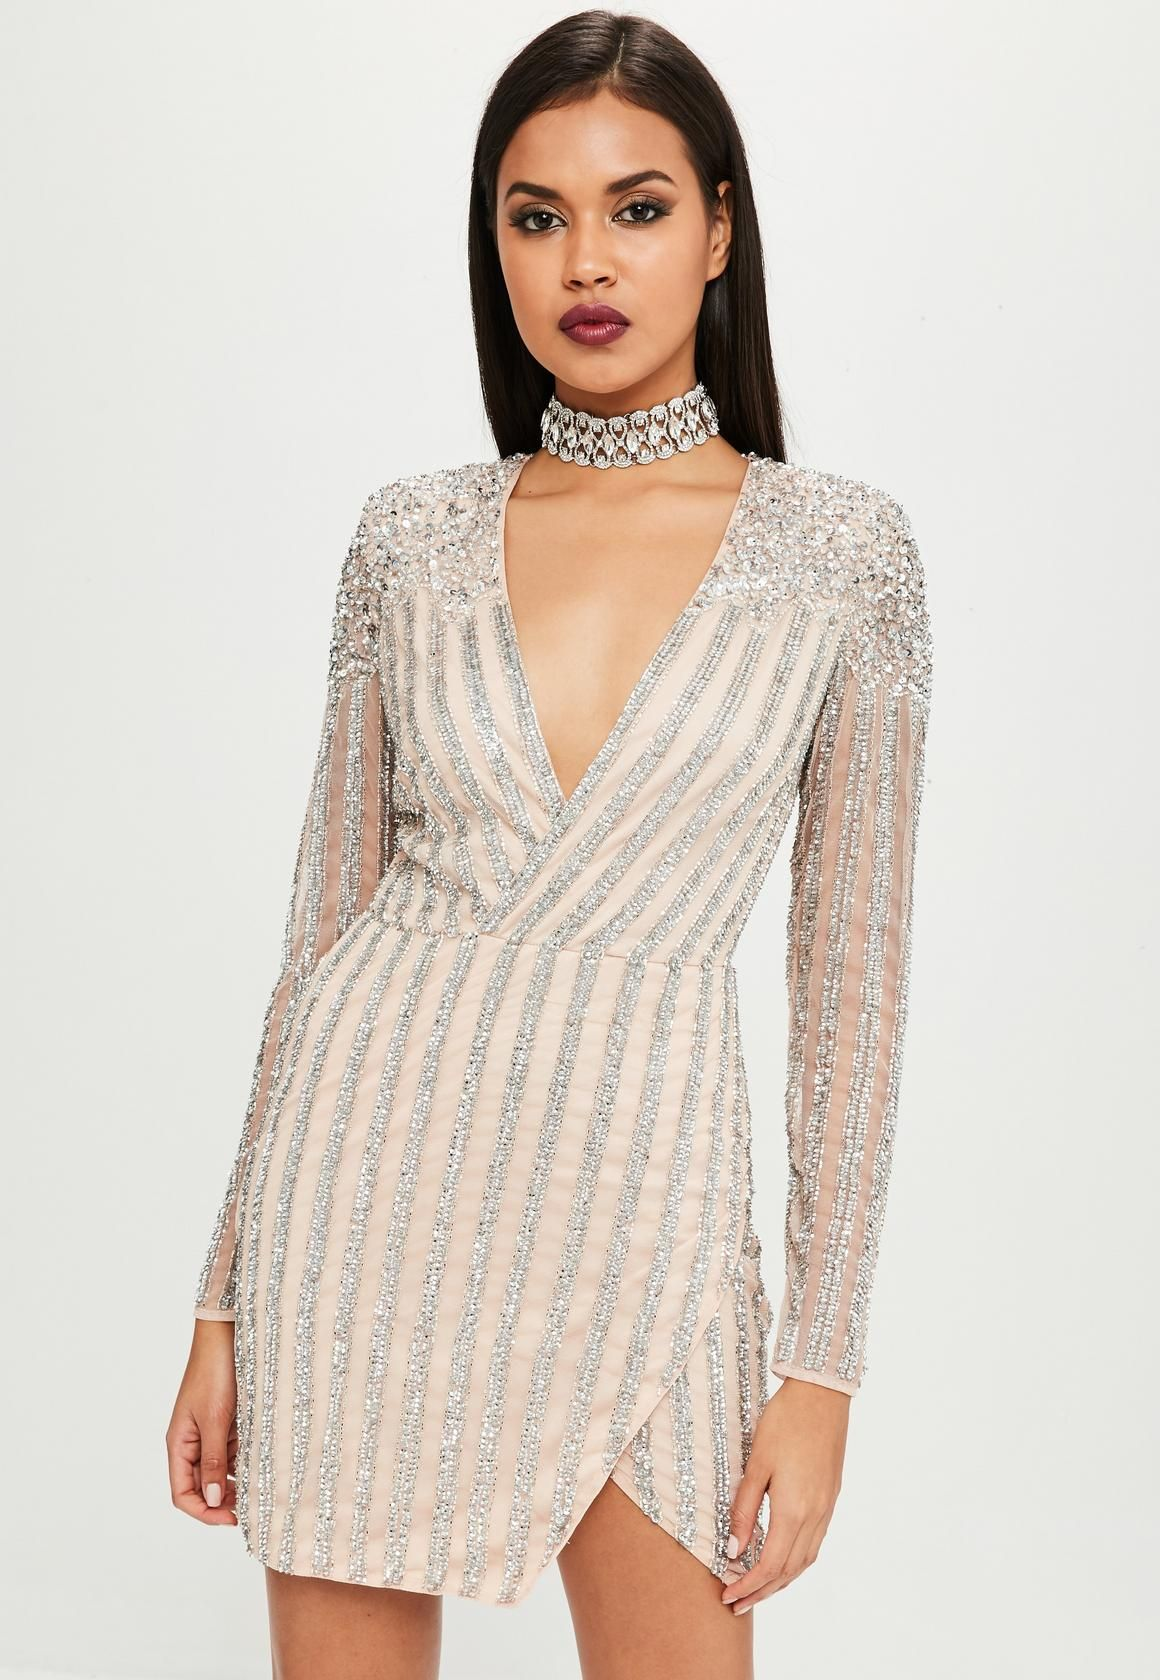 43c819fc4ee6 Carli Bybel x Missguided Nude Embellished Mini Dress | cute clothes ...